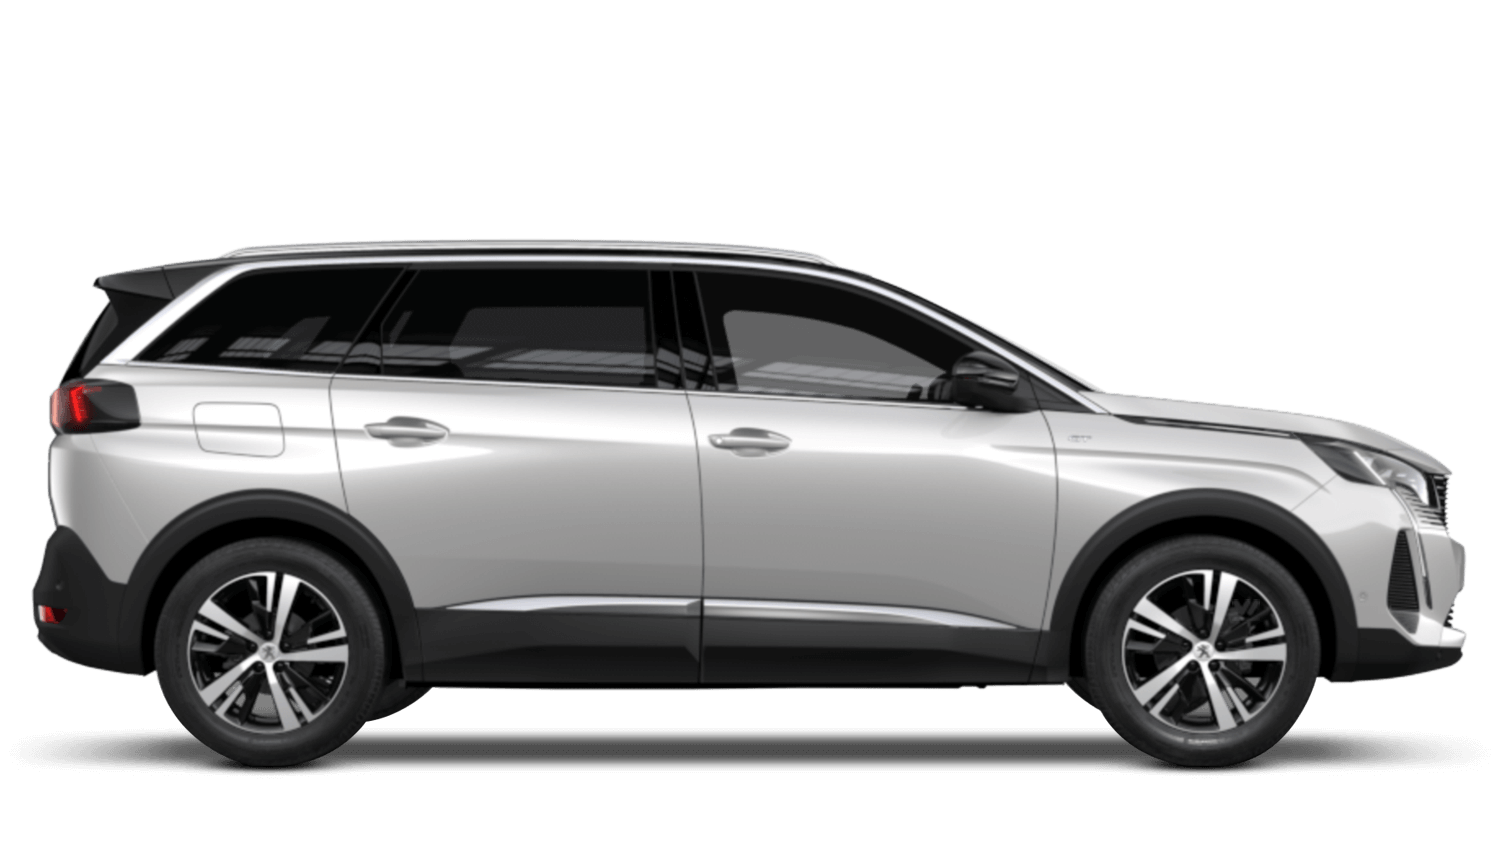 Pearlescent White New Peugeot 5008 SUV